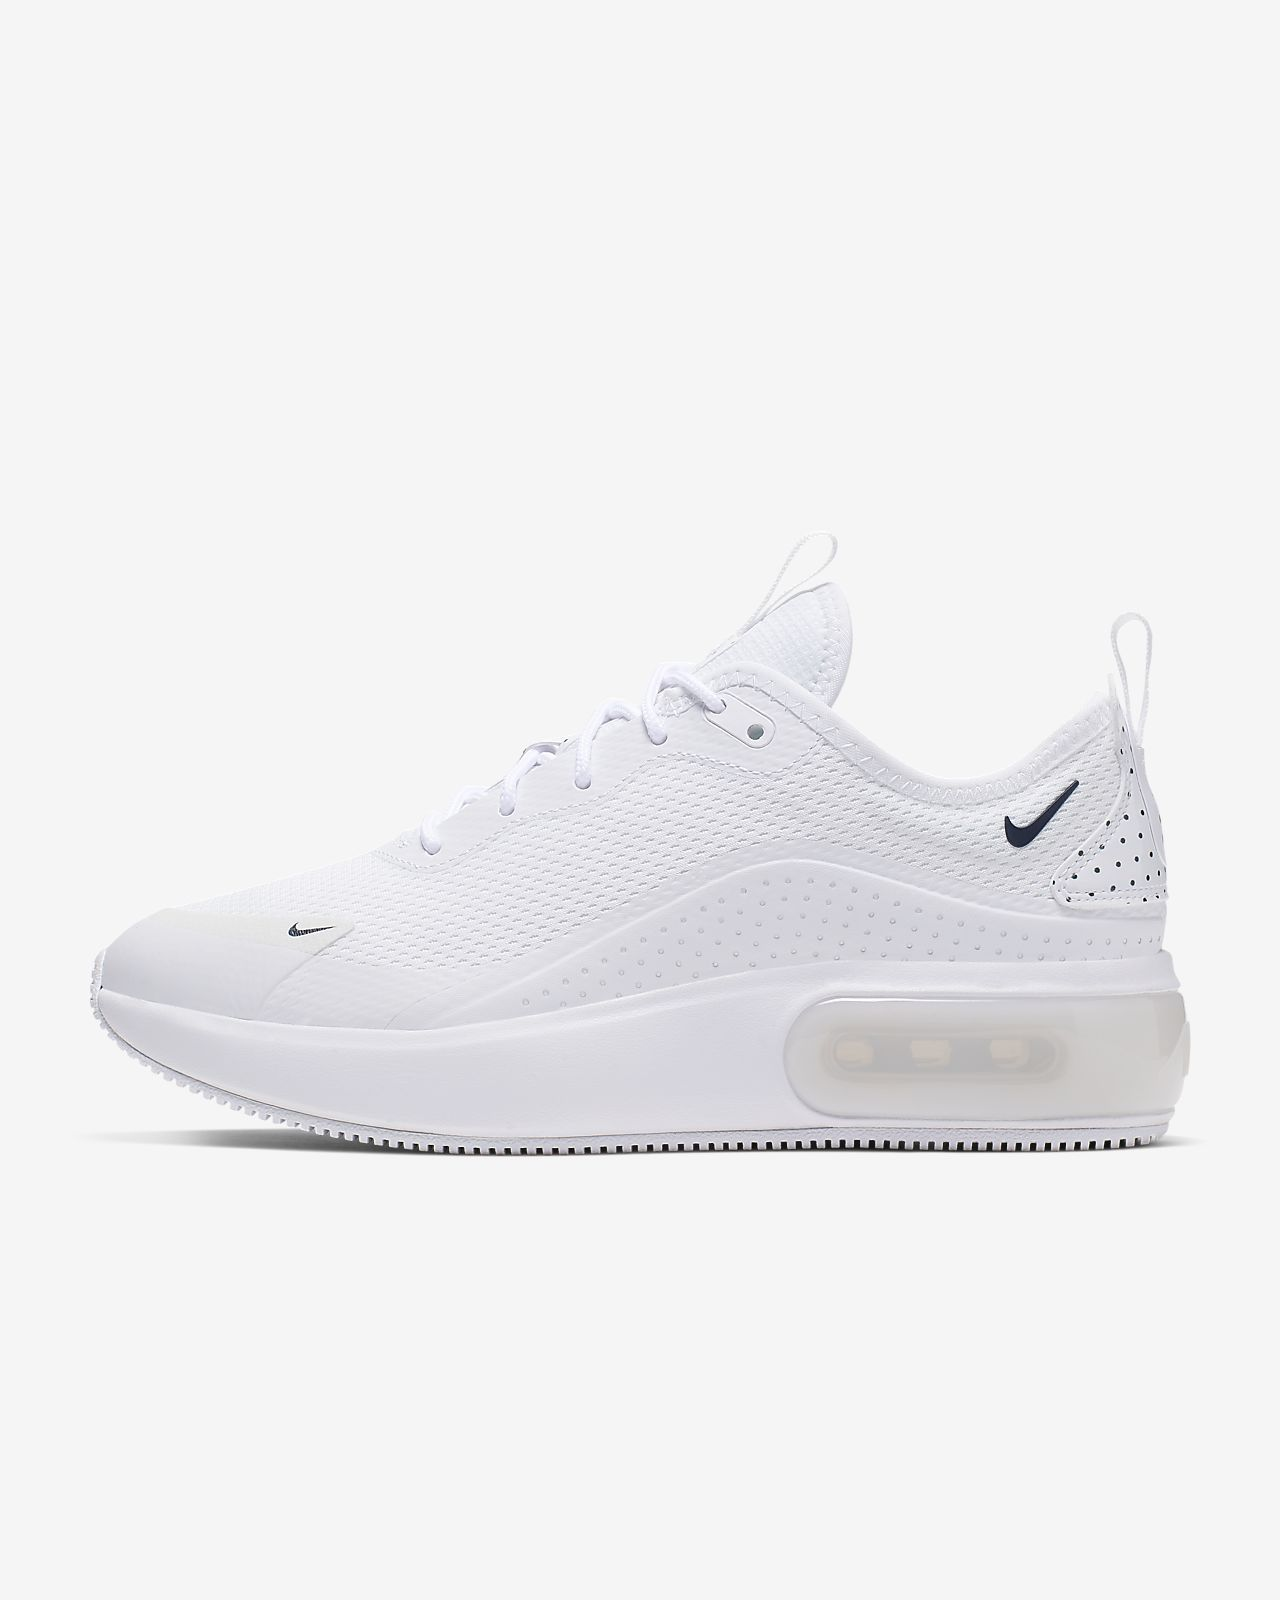 Nike Magasin France | Chaussure Nike Air Max Soldes | Nike